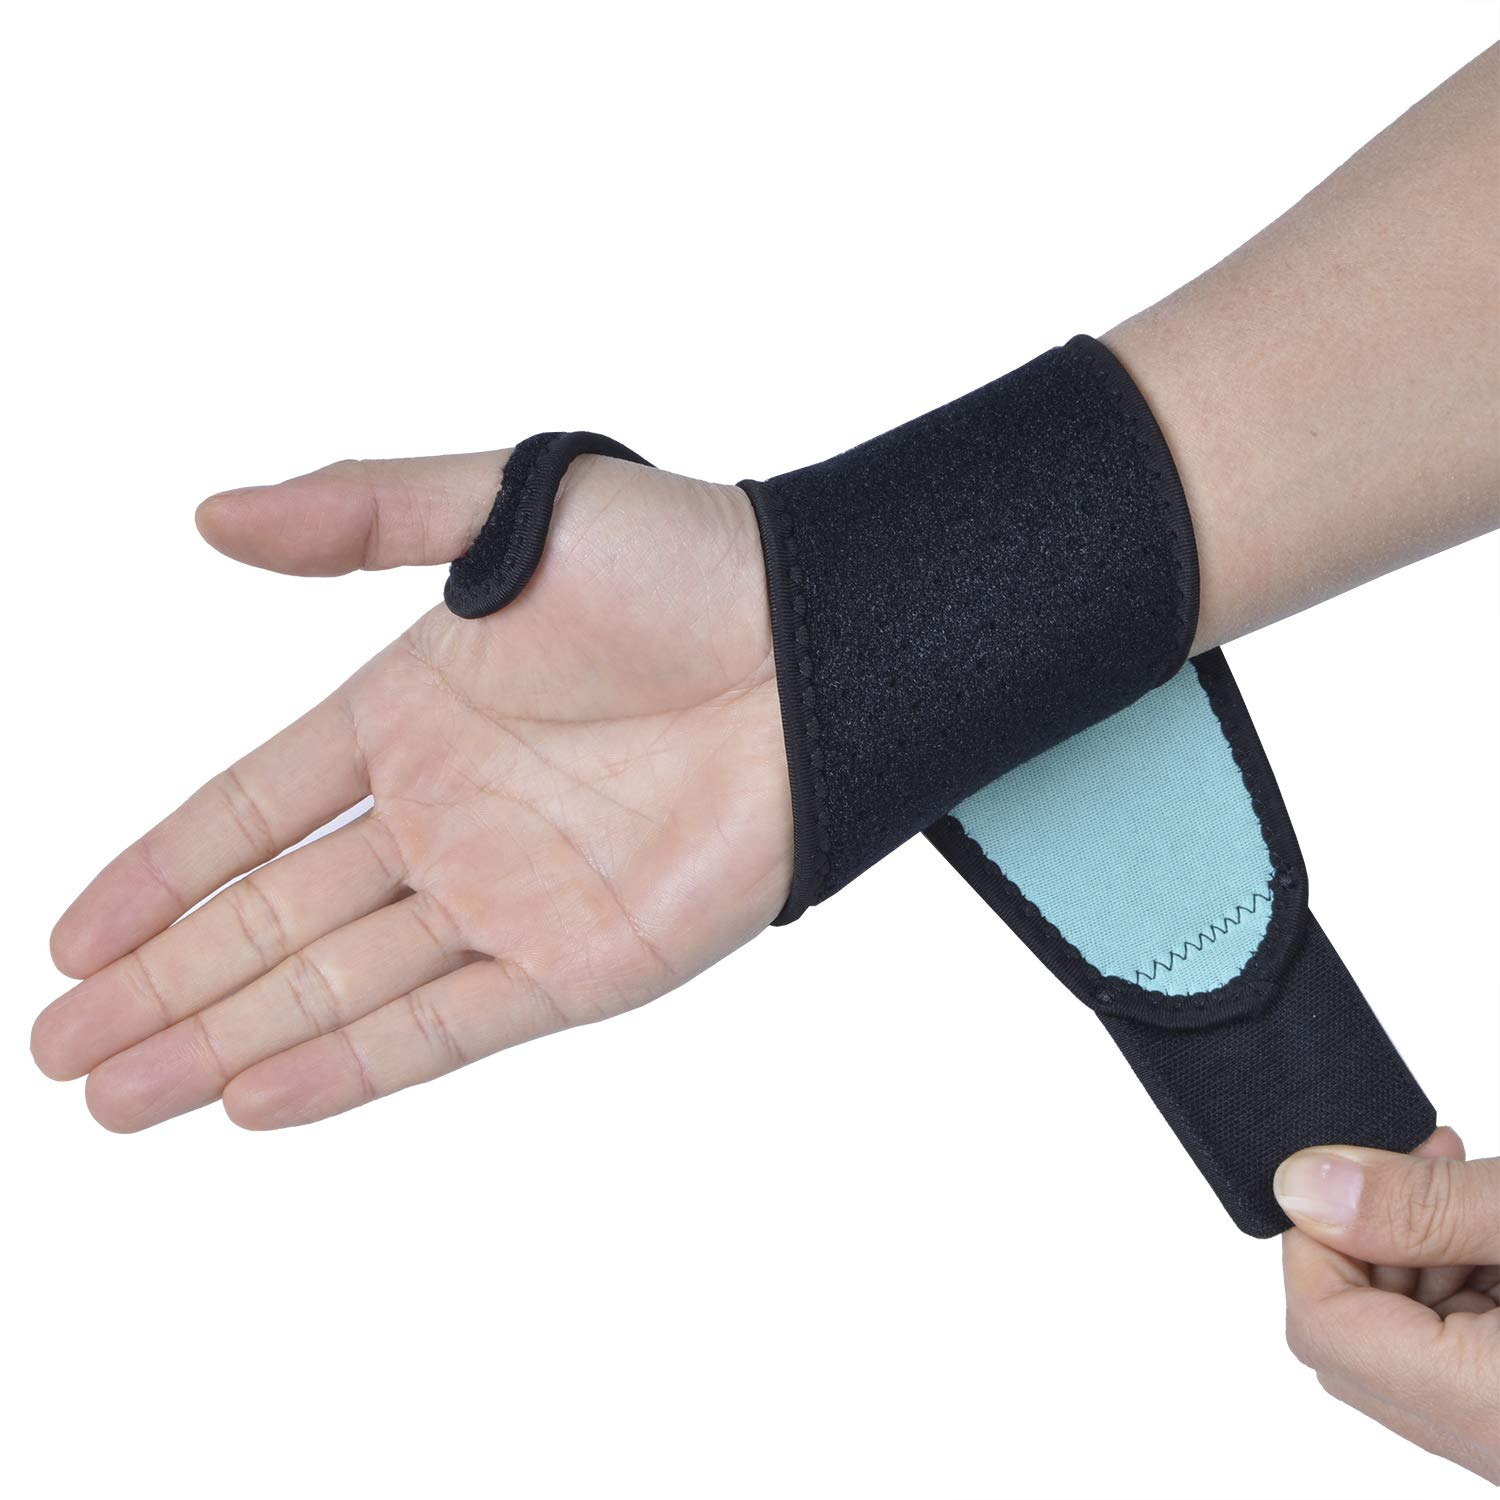 Relieve Carpal Tunnel Sprains and Fatigue Wrist Arthritis Pain Thx4COPPER/® Wrist Support for Both Right and Left Hands Thx4 Copper Copper Infused Compression Sleeve Adjustable Brace Strap Band